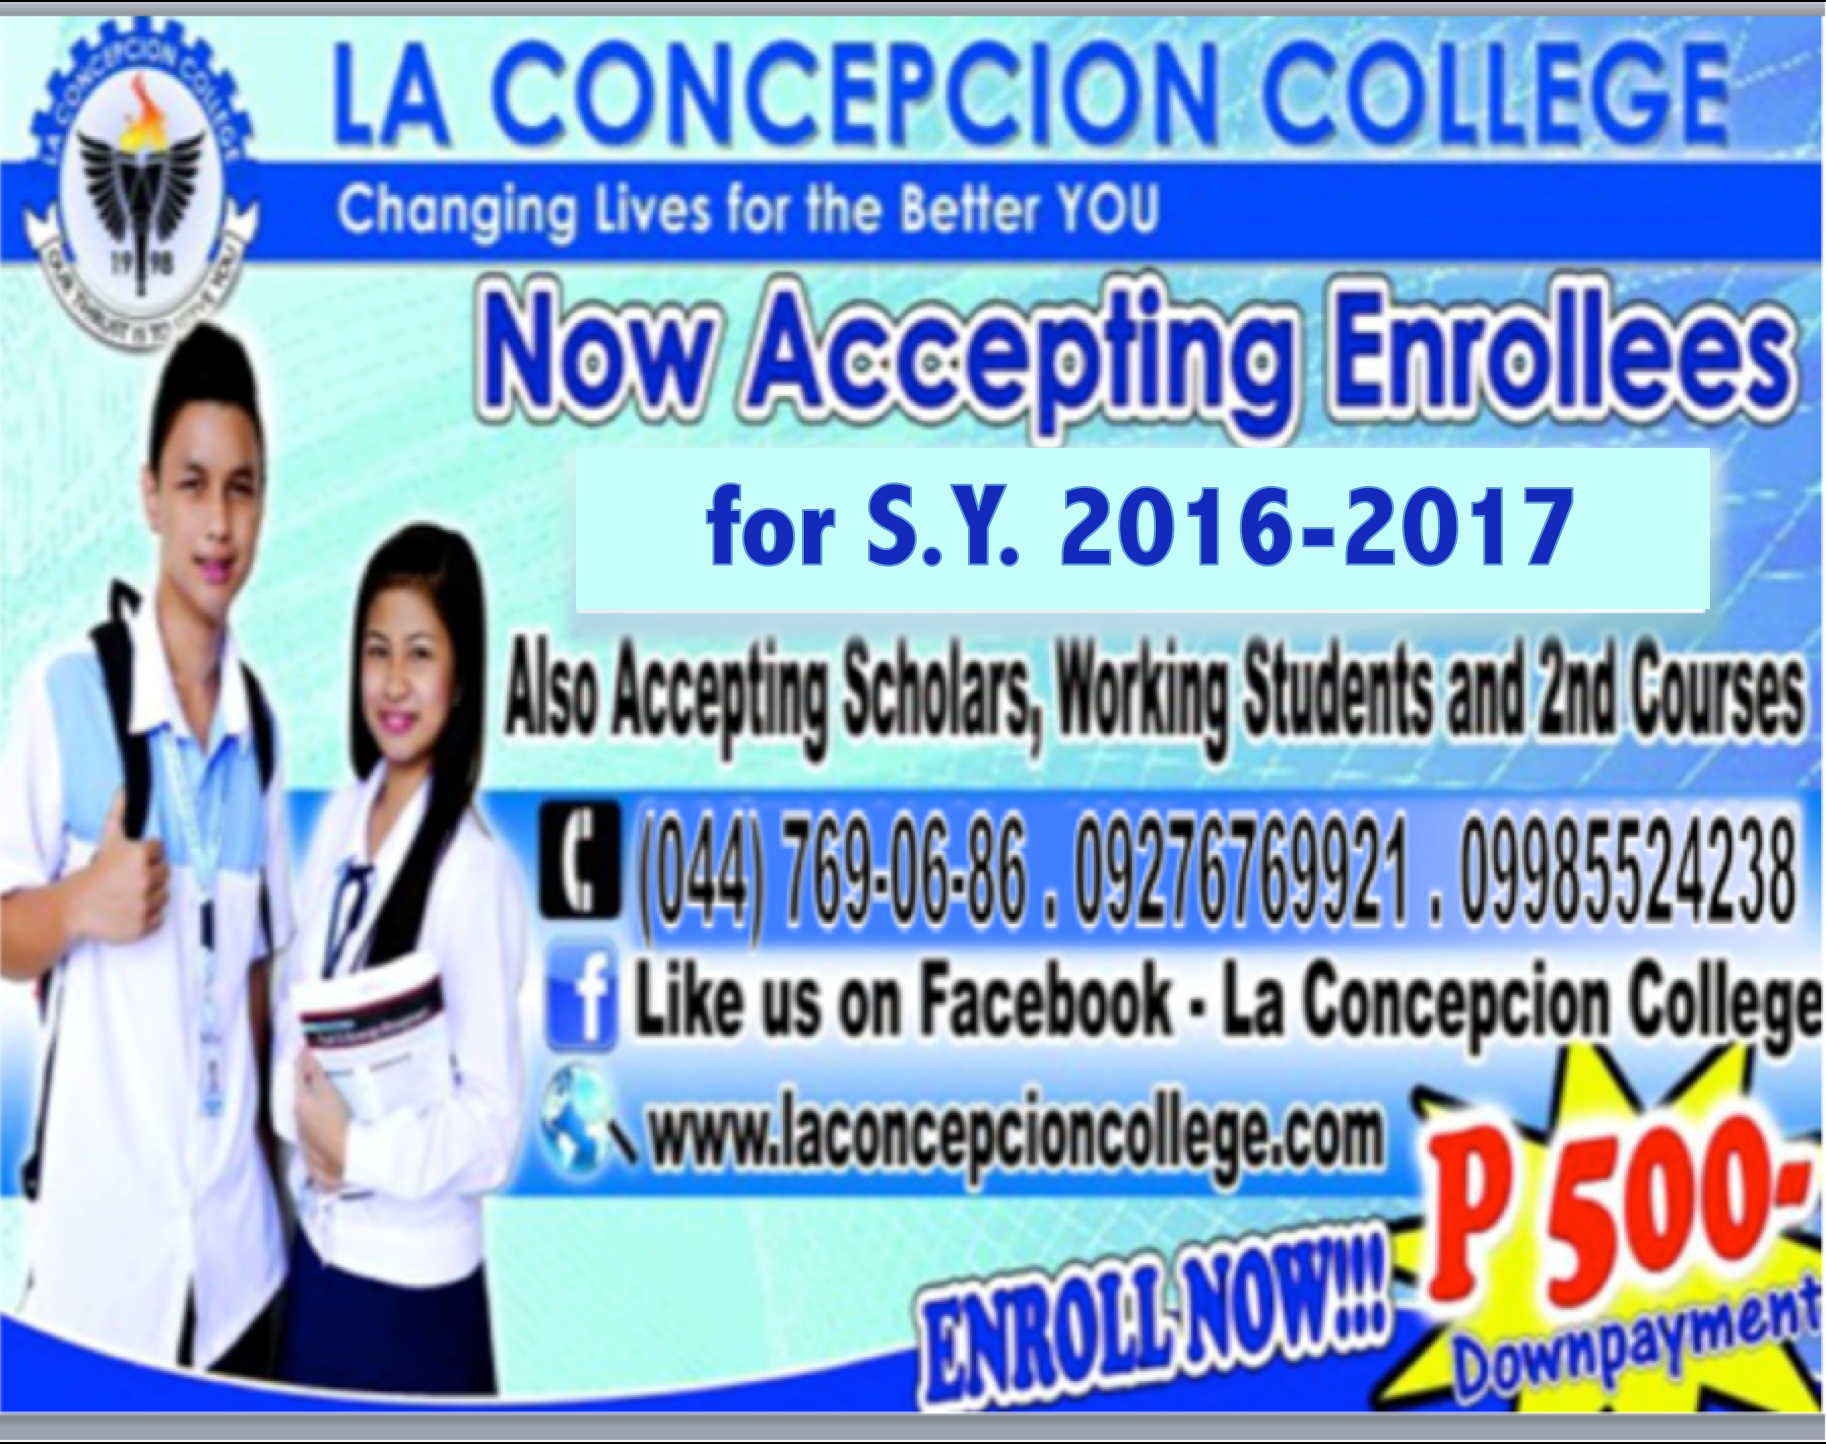 la concepcion college city of san jose del monte